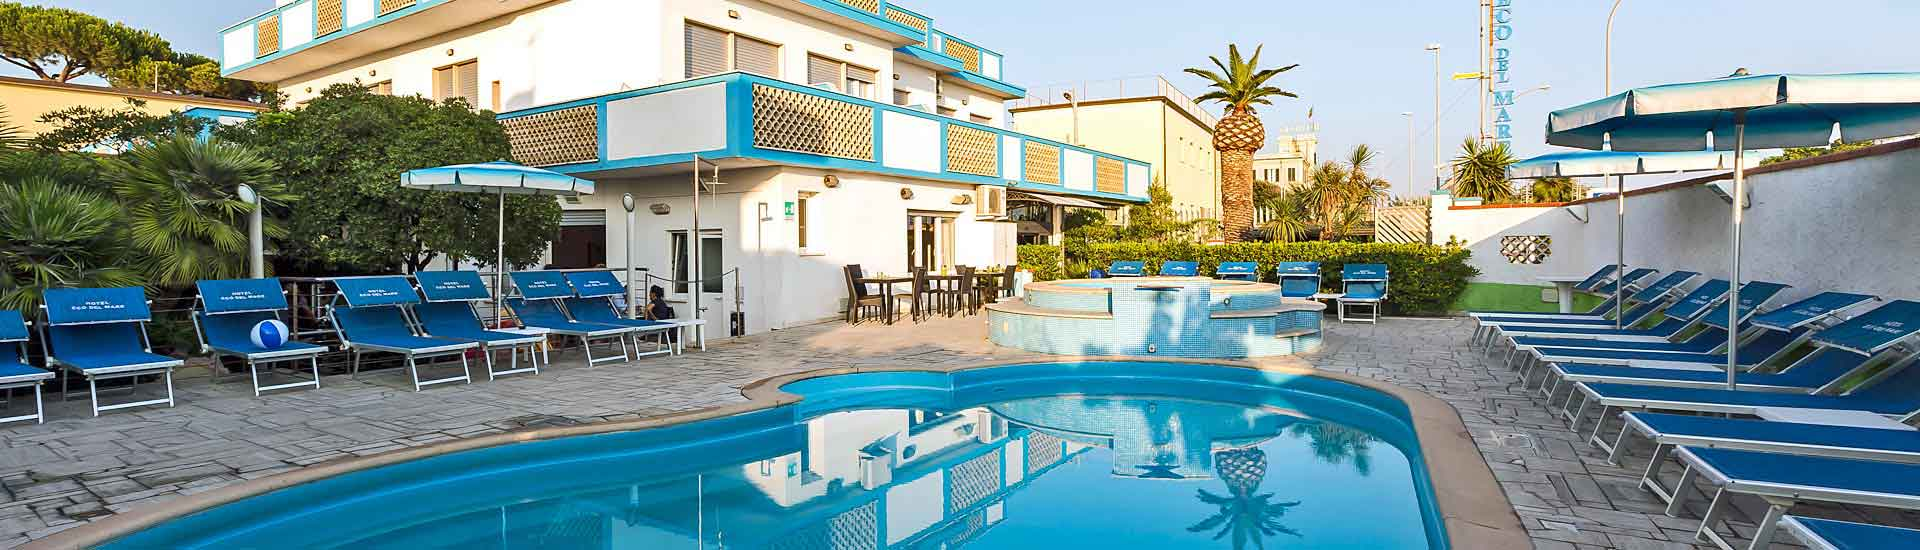 Swimming Pool - Hotel Eco del Mare